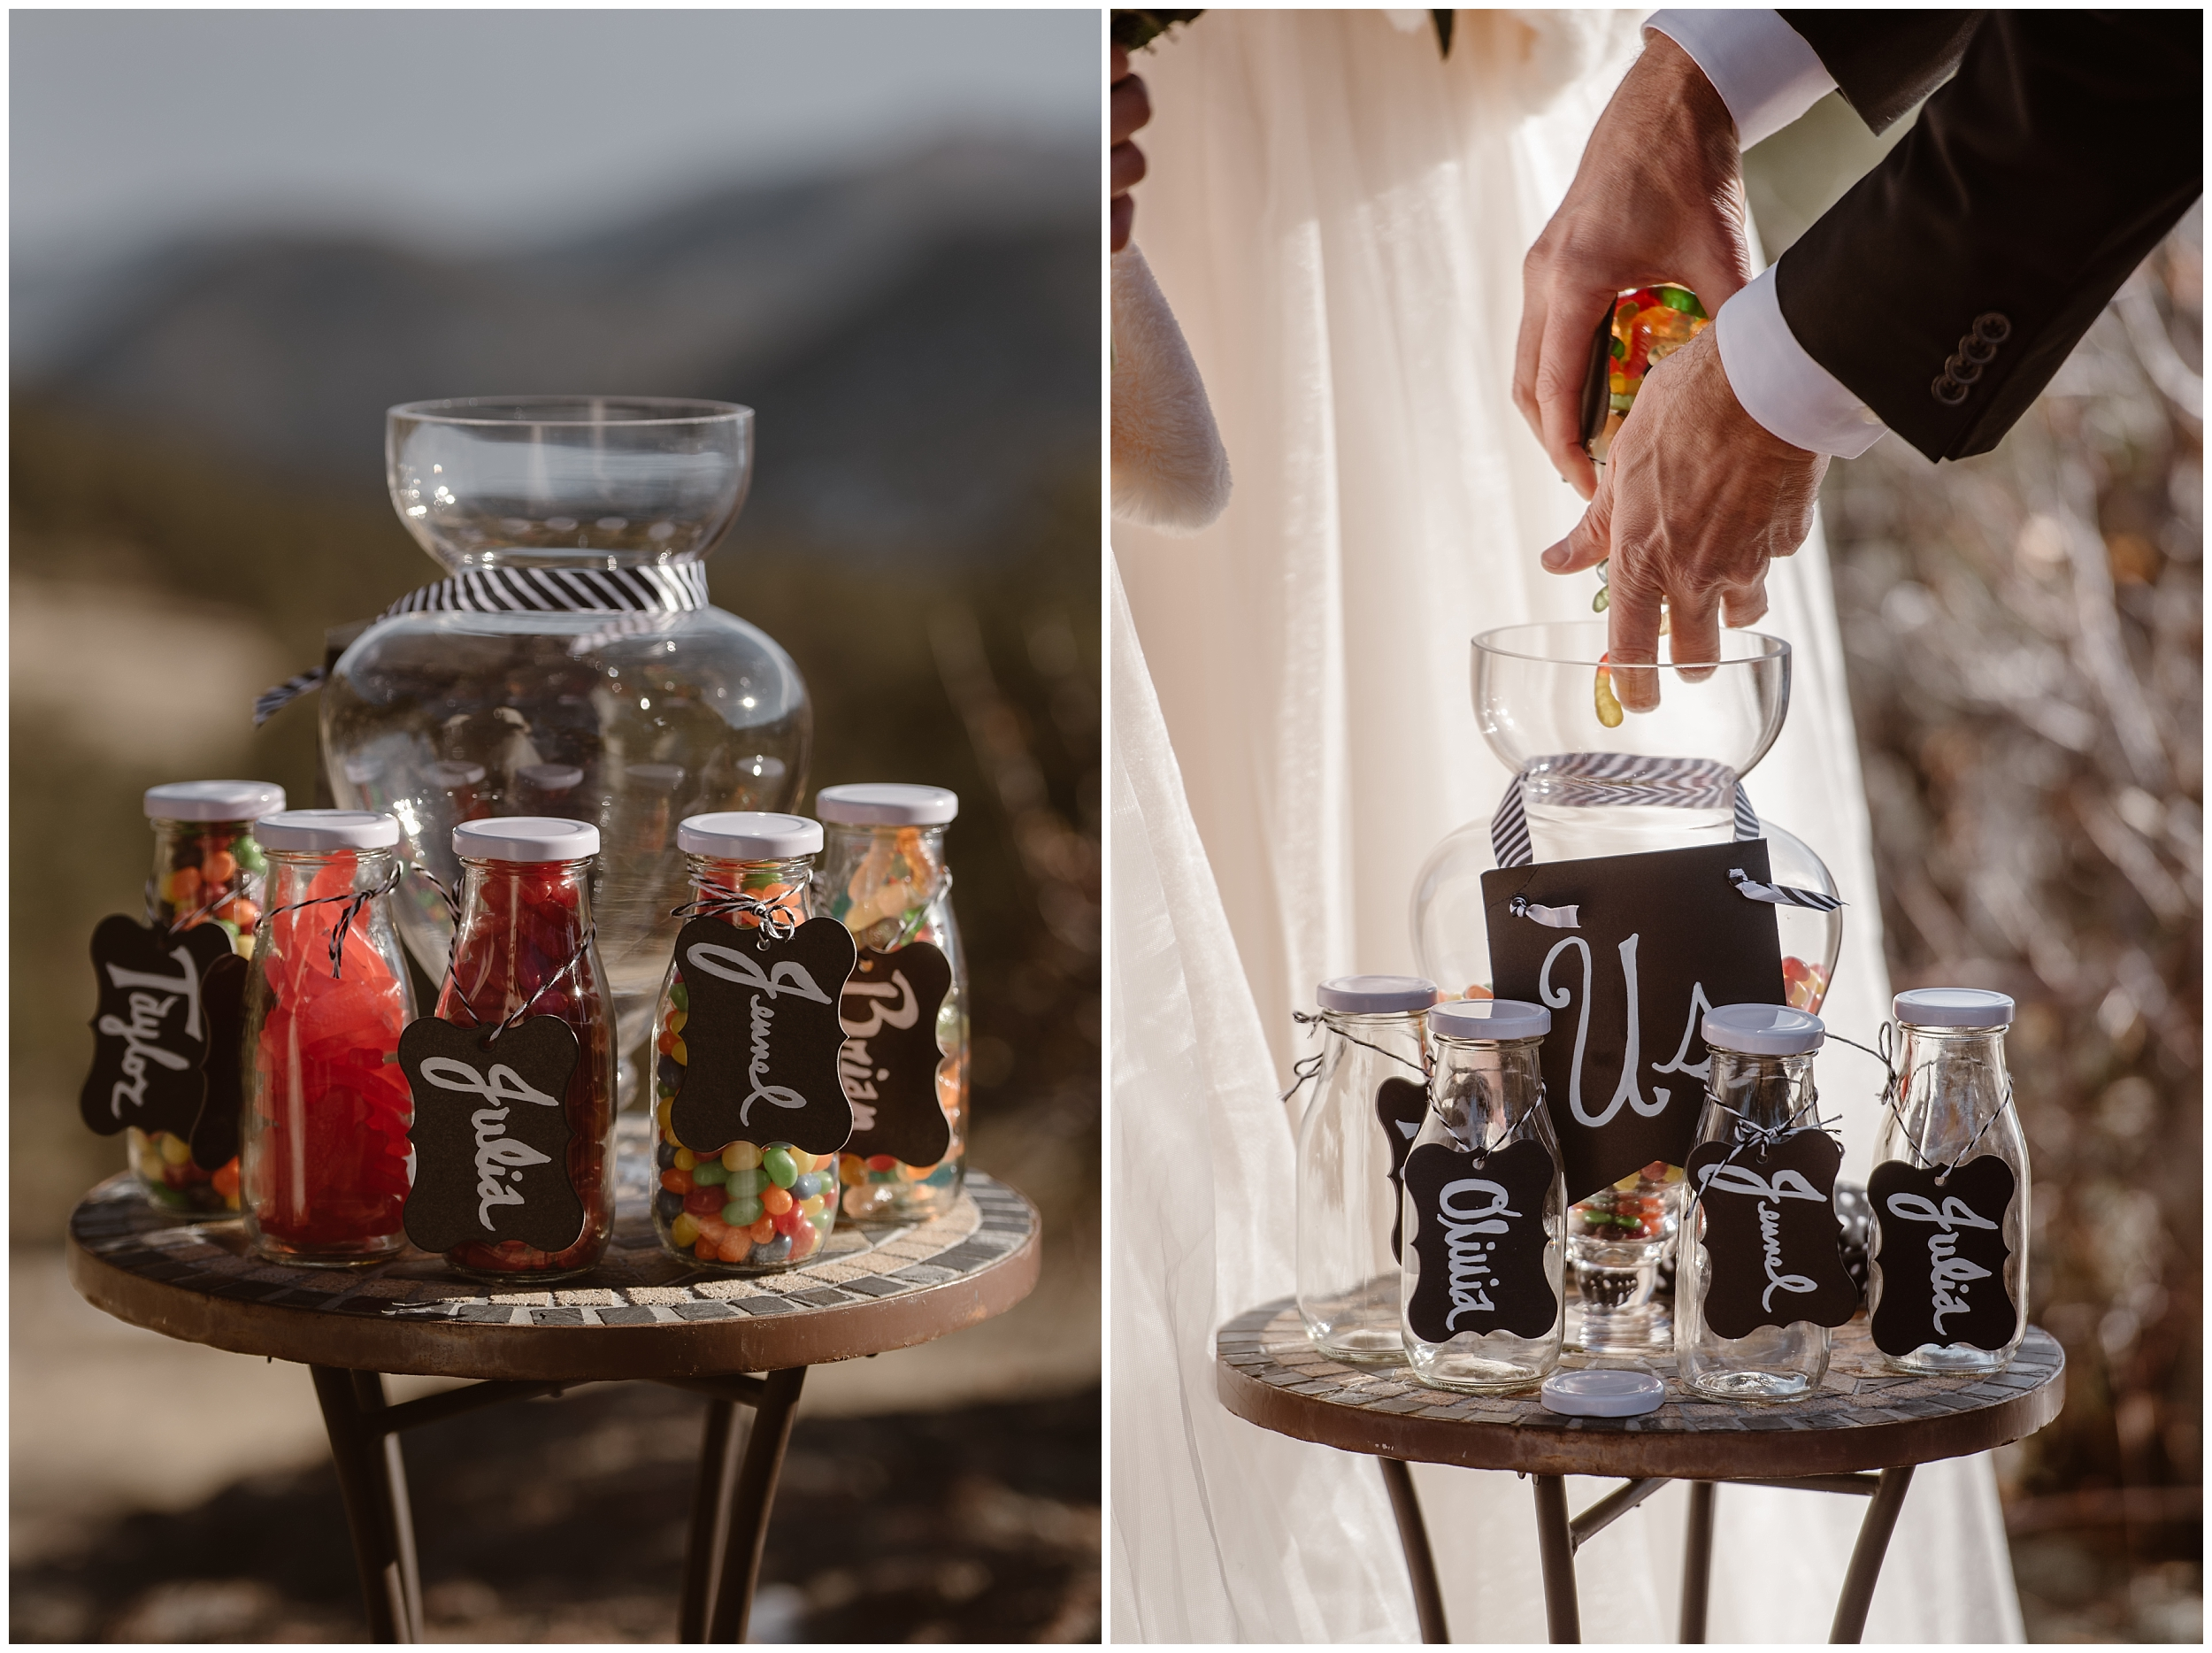 These side-by-side elopement photos show an elopement ceremony idea for including a child in the wedding ceremony — candy jars! That's one of the benefits of eloping, you can incorporate any type of elopement ceremony into your destination elopement ceremony.